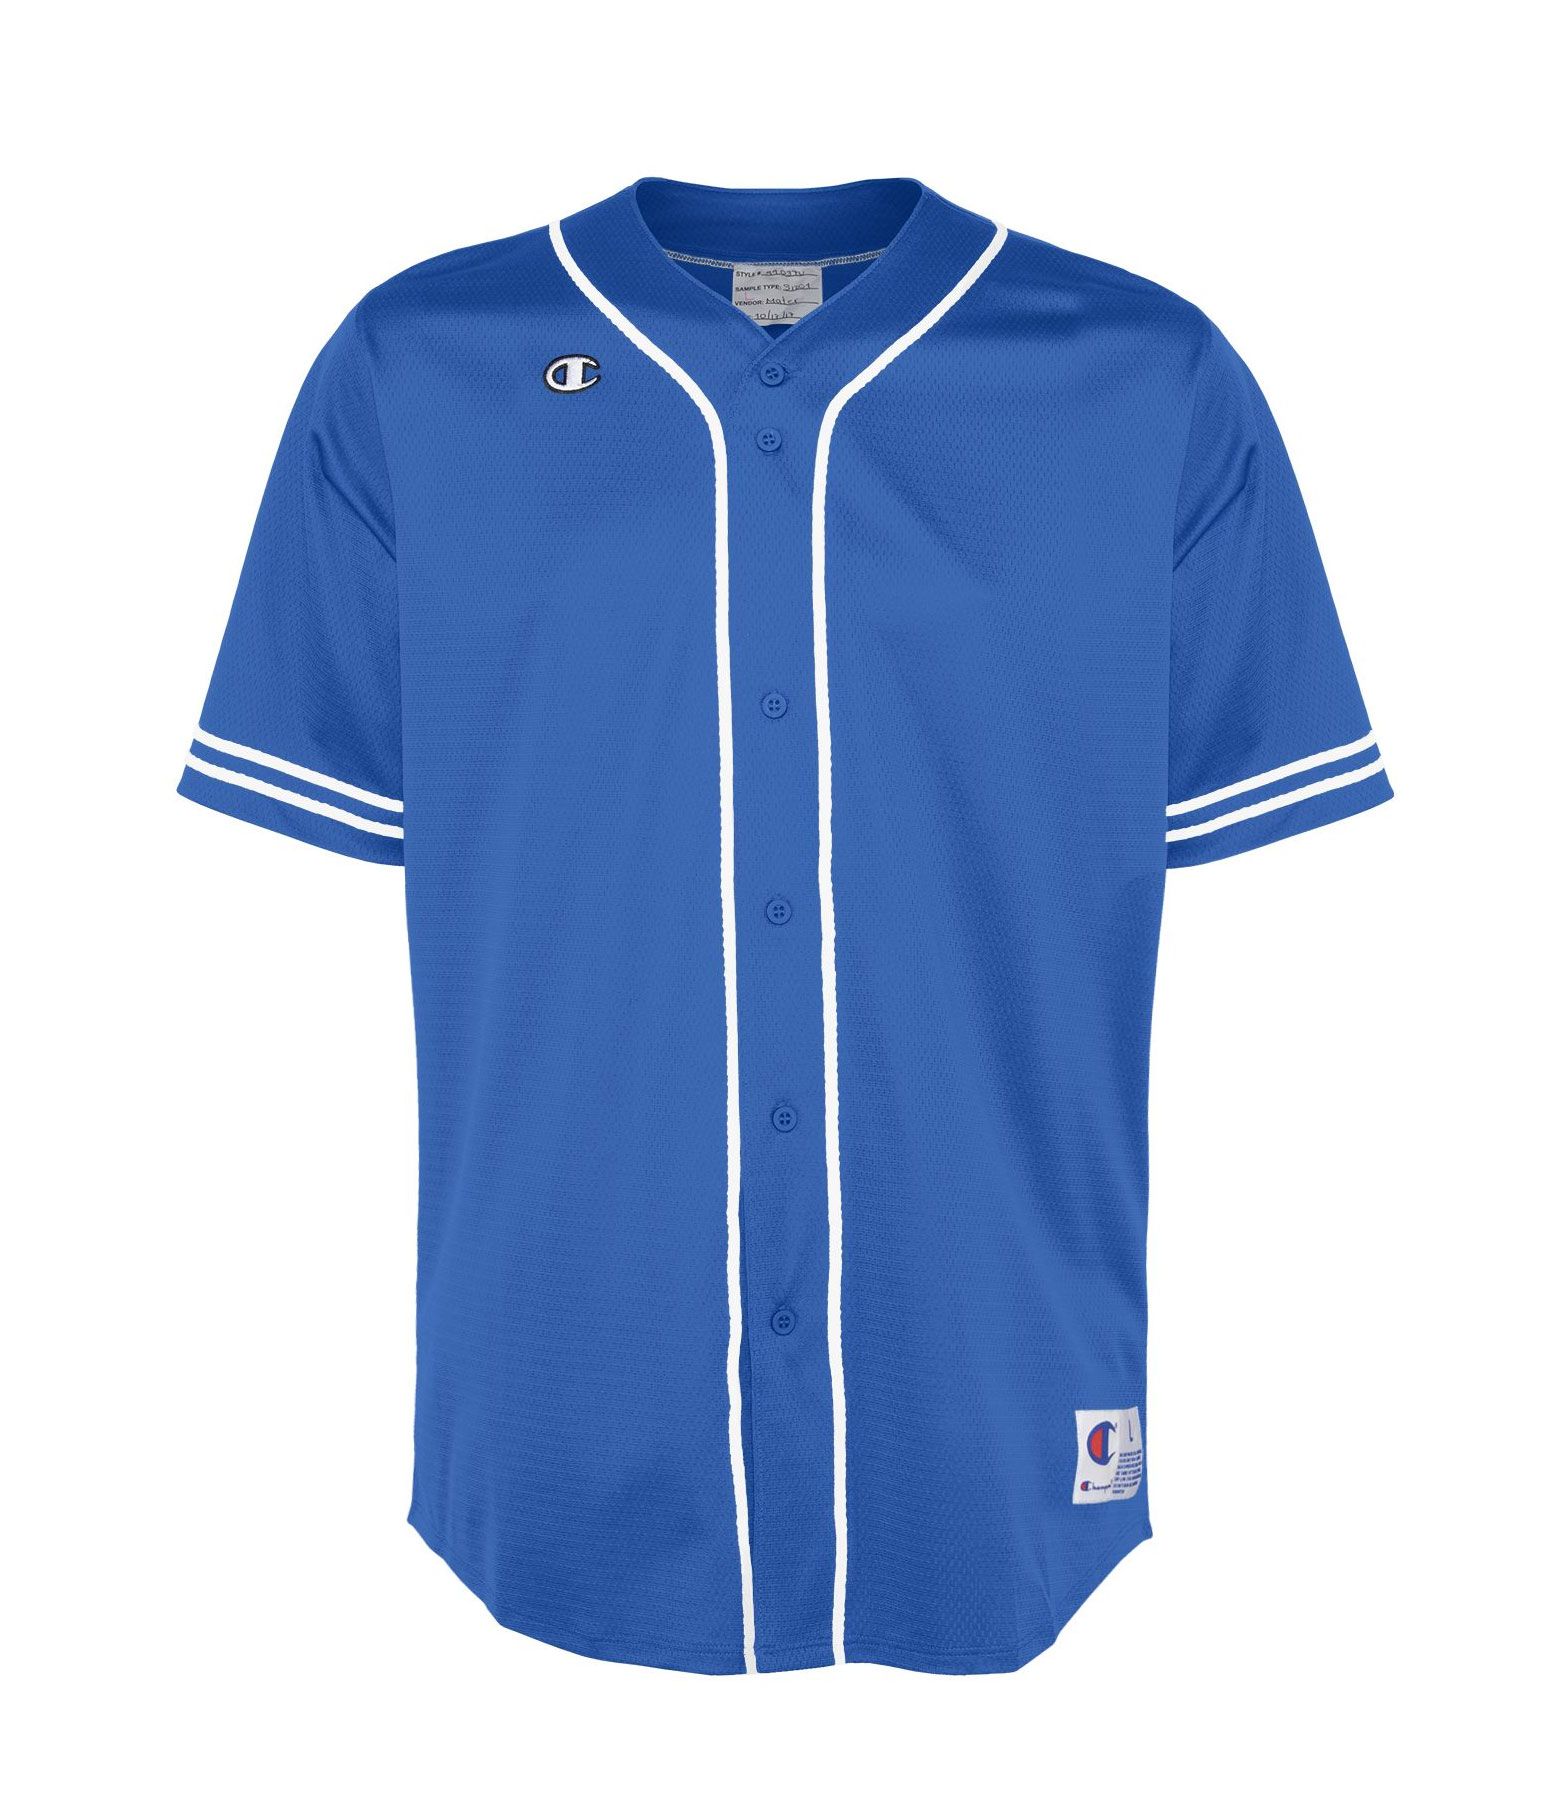 Youth Champion Slider Baseball Jersey